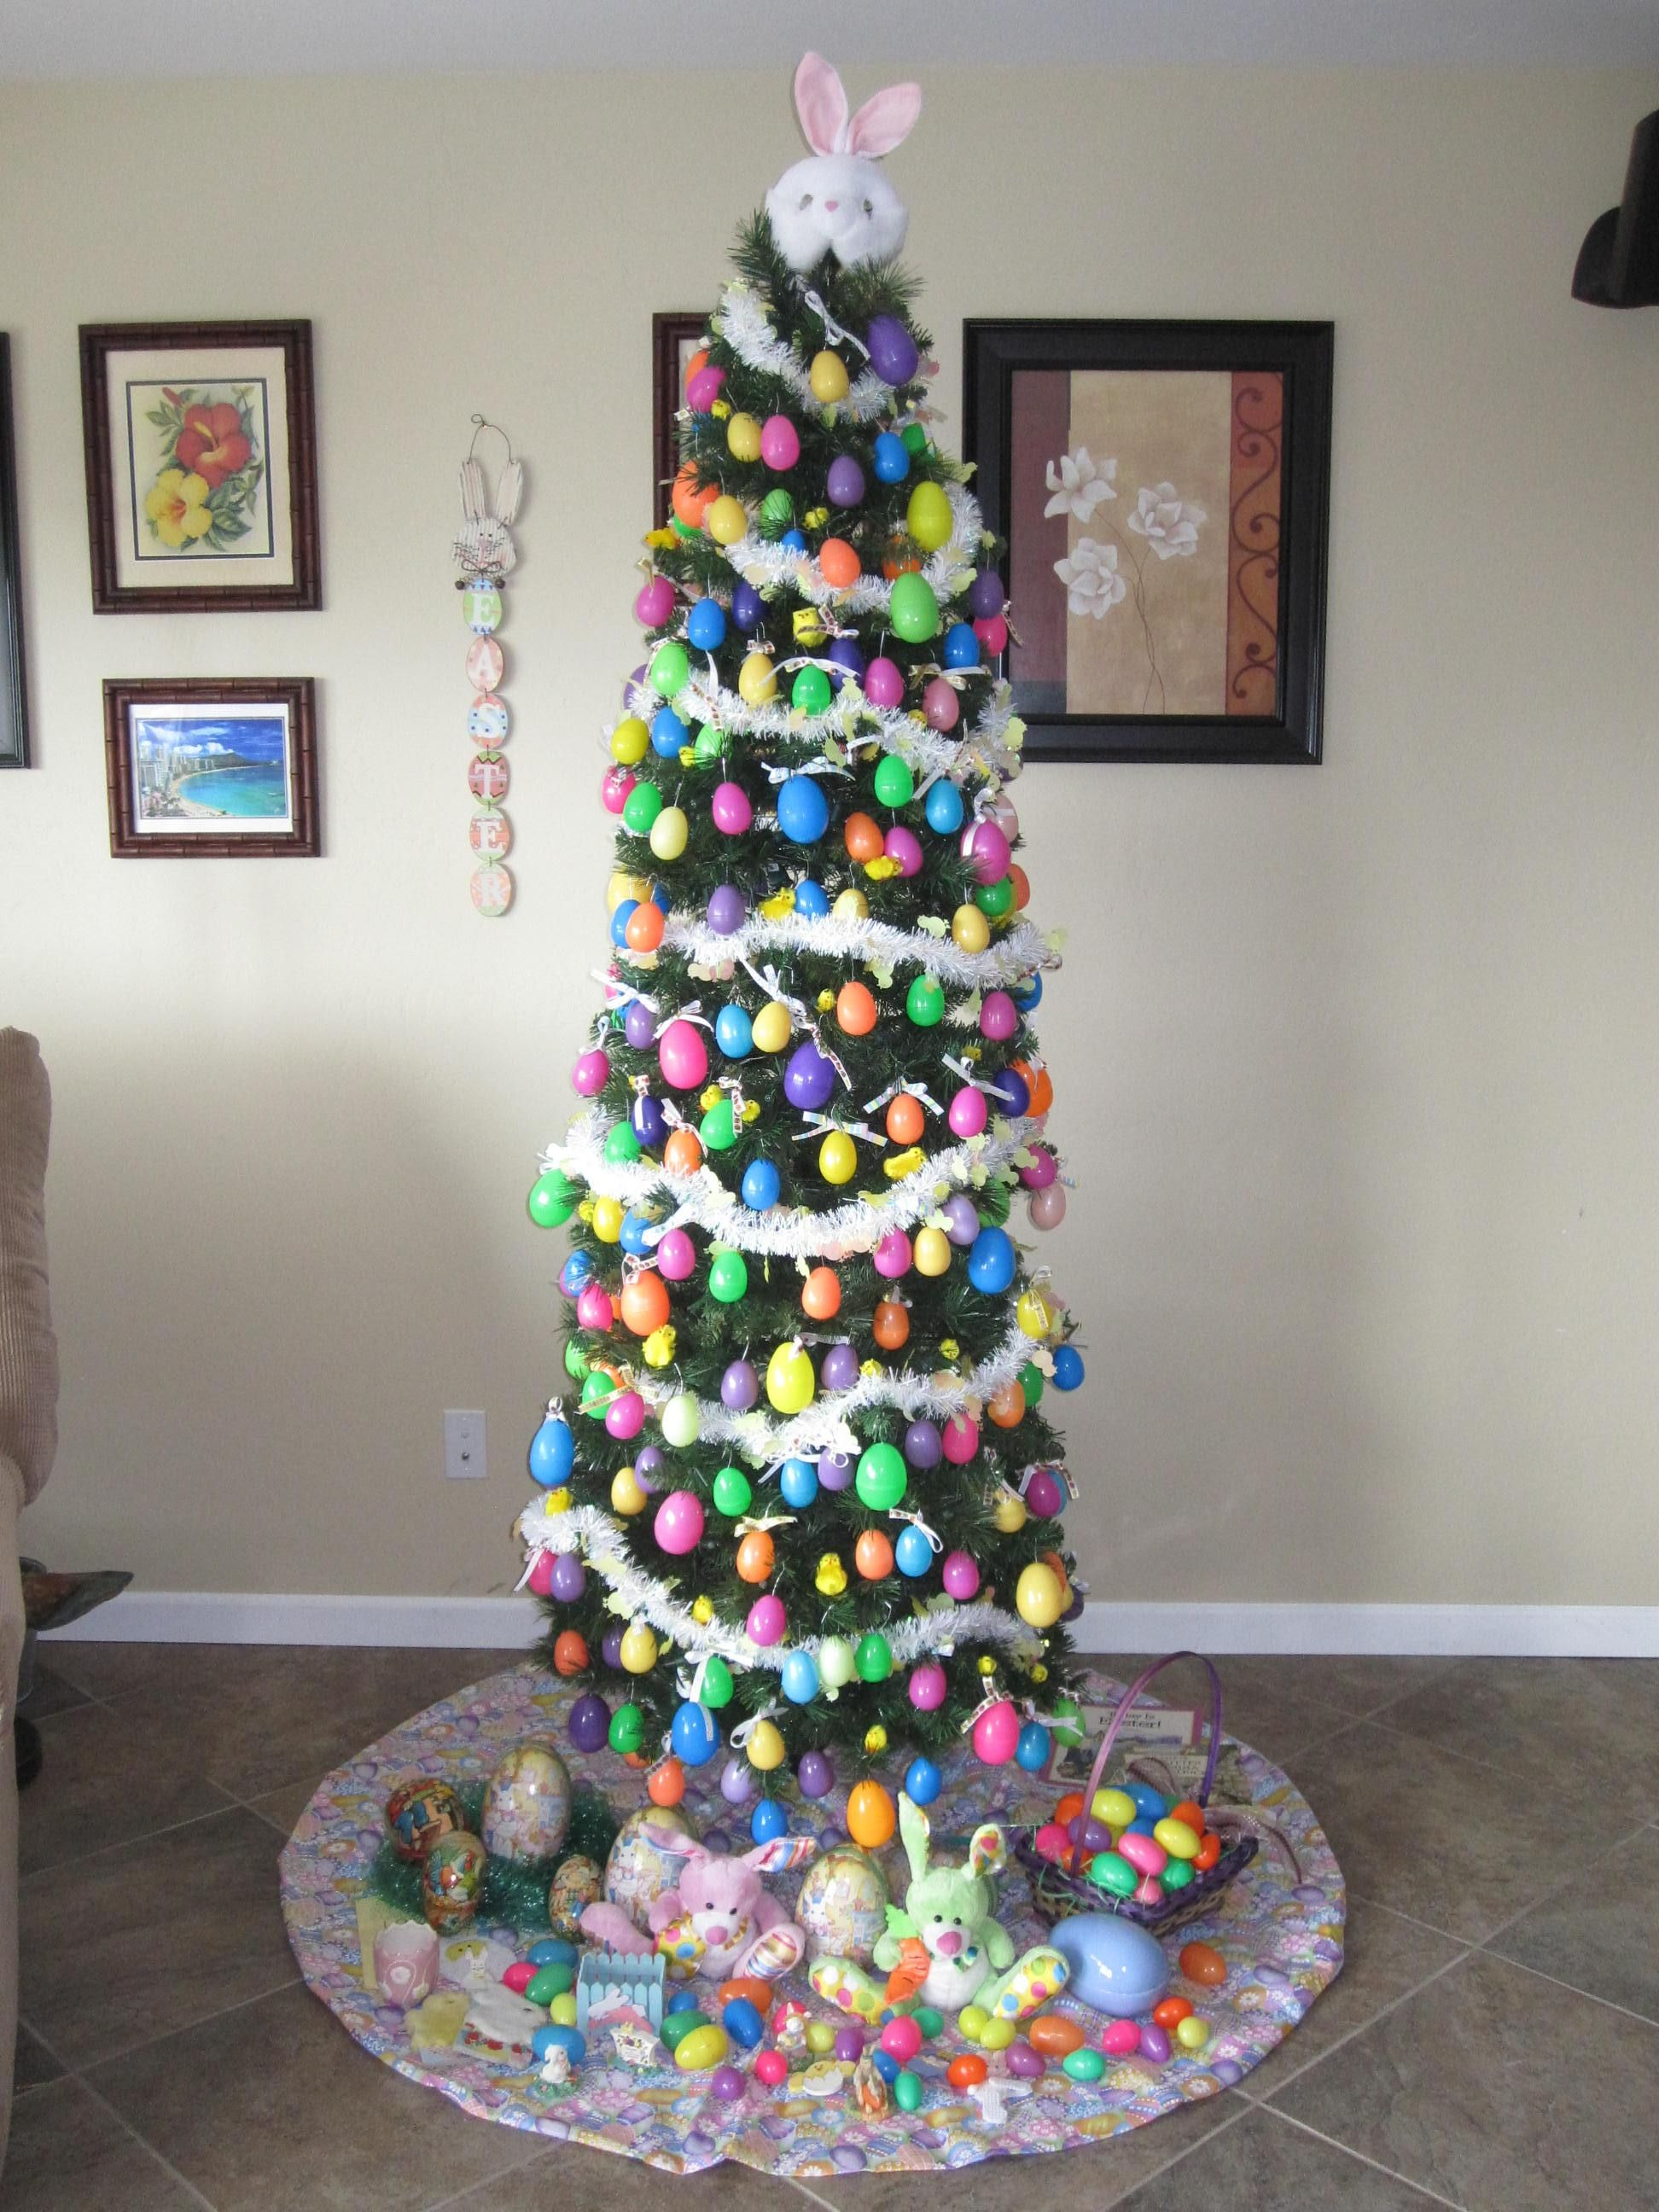 Pin By Nikki Elledge On Diy Crafts Easter Tree Decorations Easter Egg Tree Spring Easter Decor